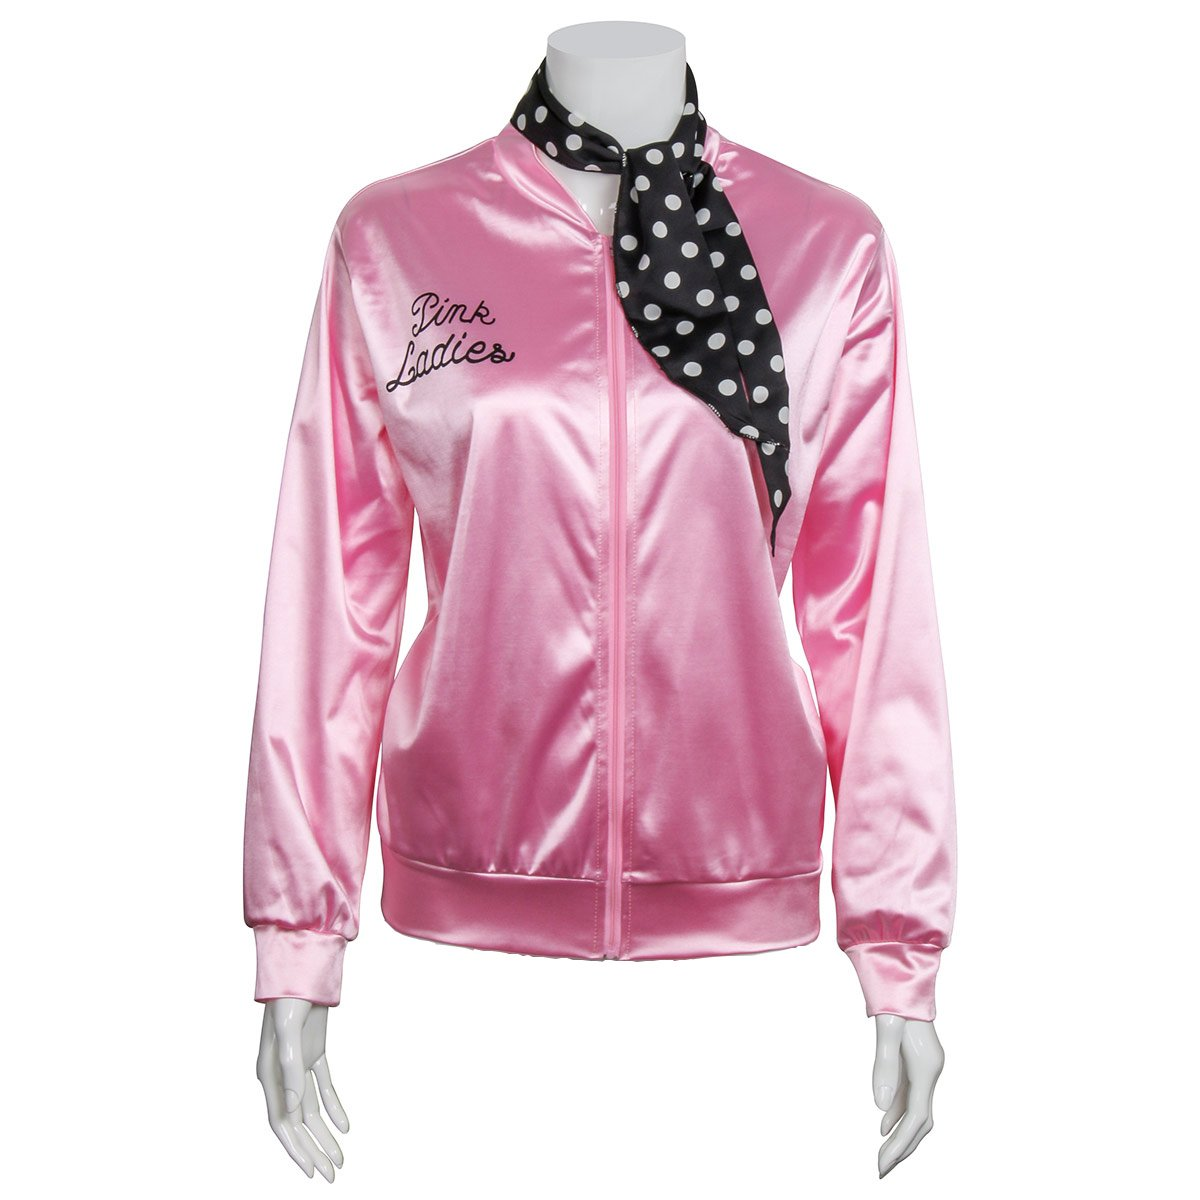 856fd565c1 1950s Pink Satin Jacket with Neck Scarf Girls Women Halloween Costume Fancy  Dress Props